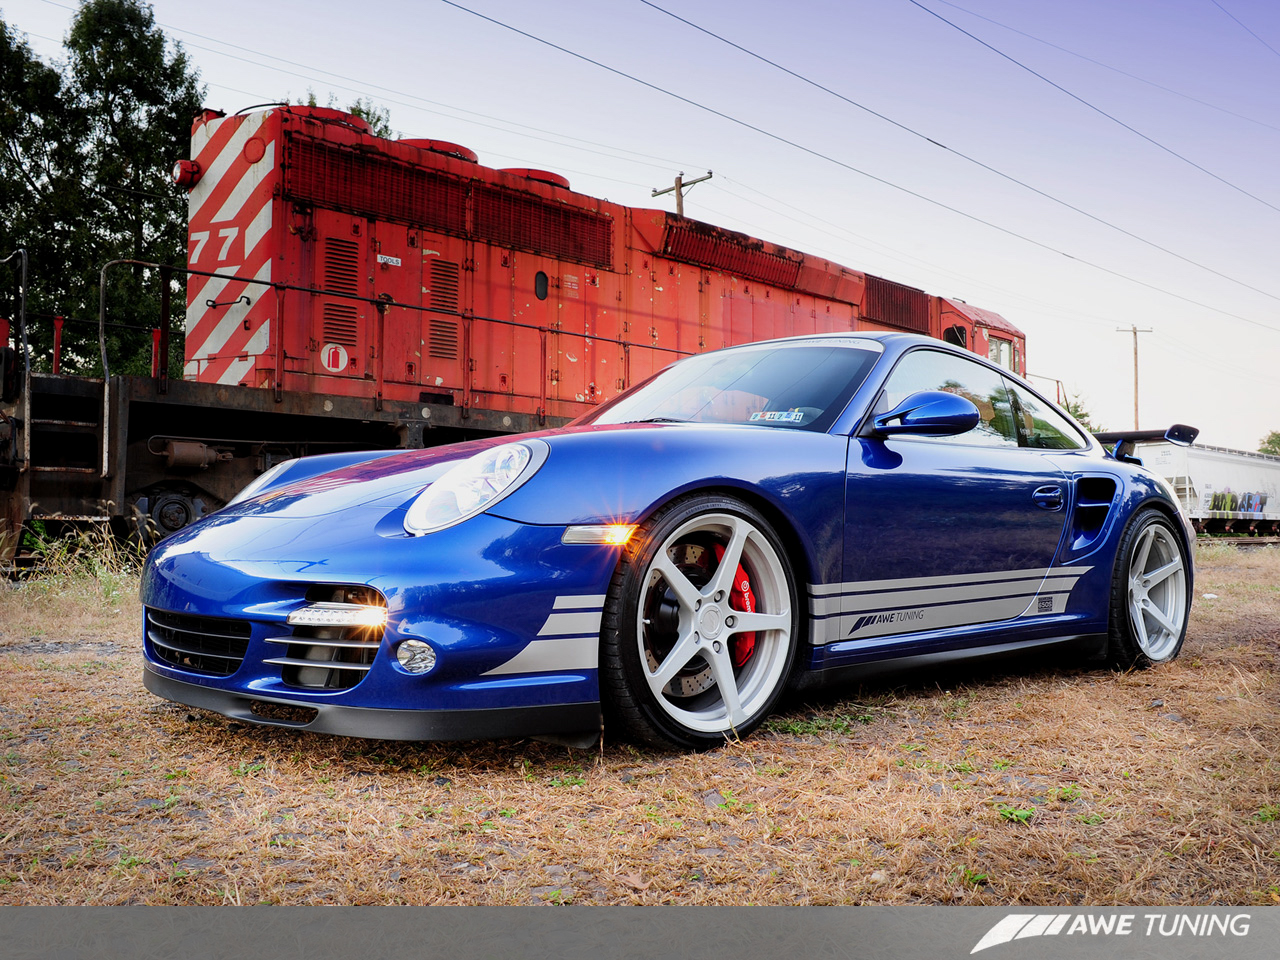 The Awe Tuning 991 Turbo S Build Thread Rennlist Porsche Discussion Forums